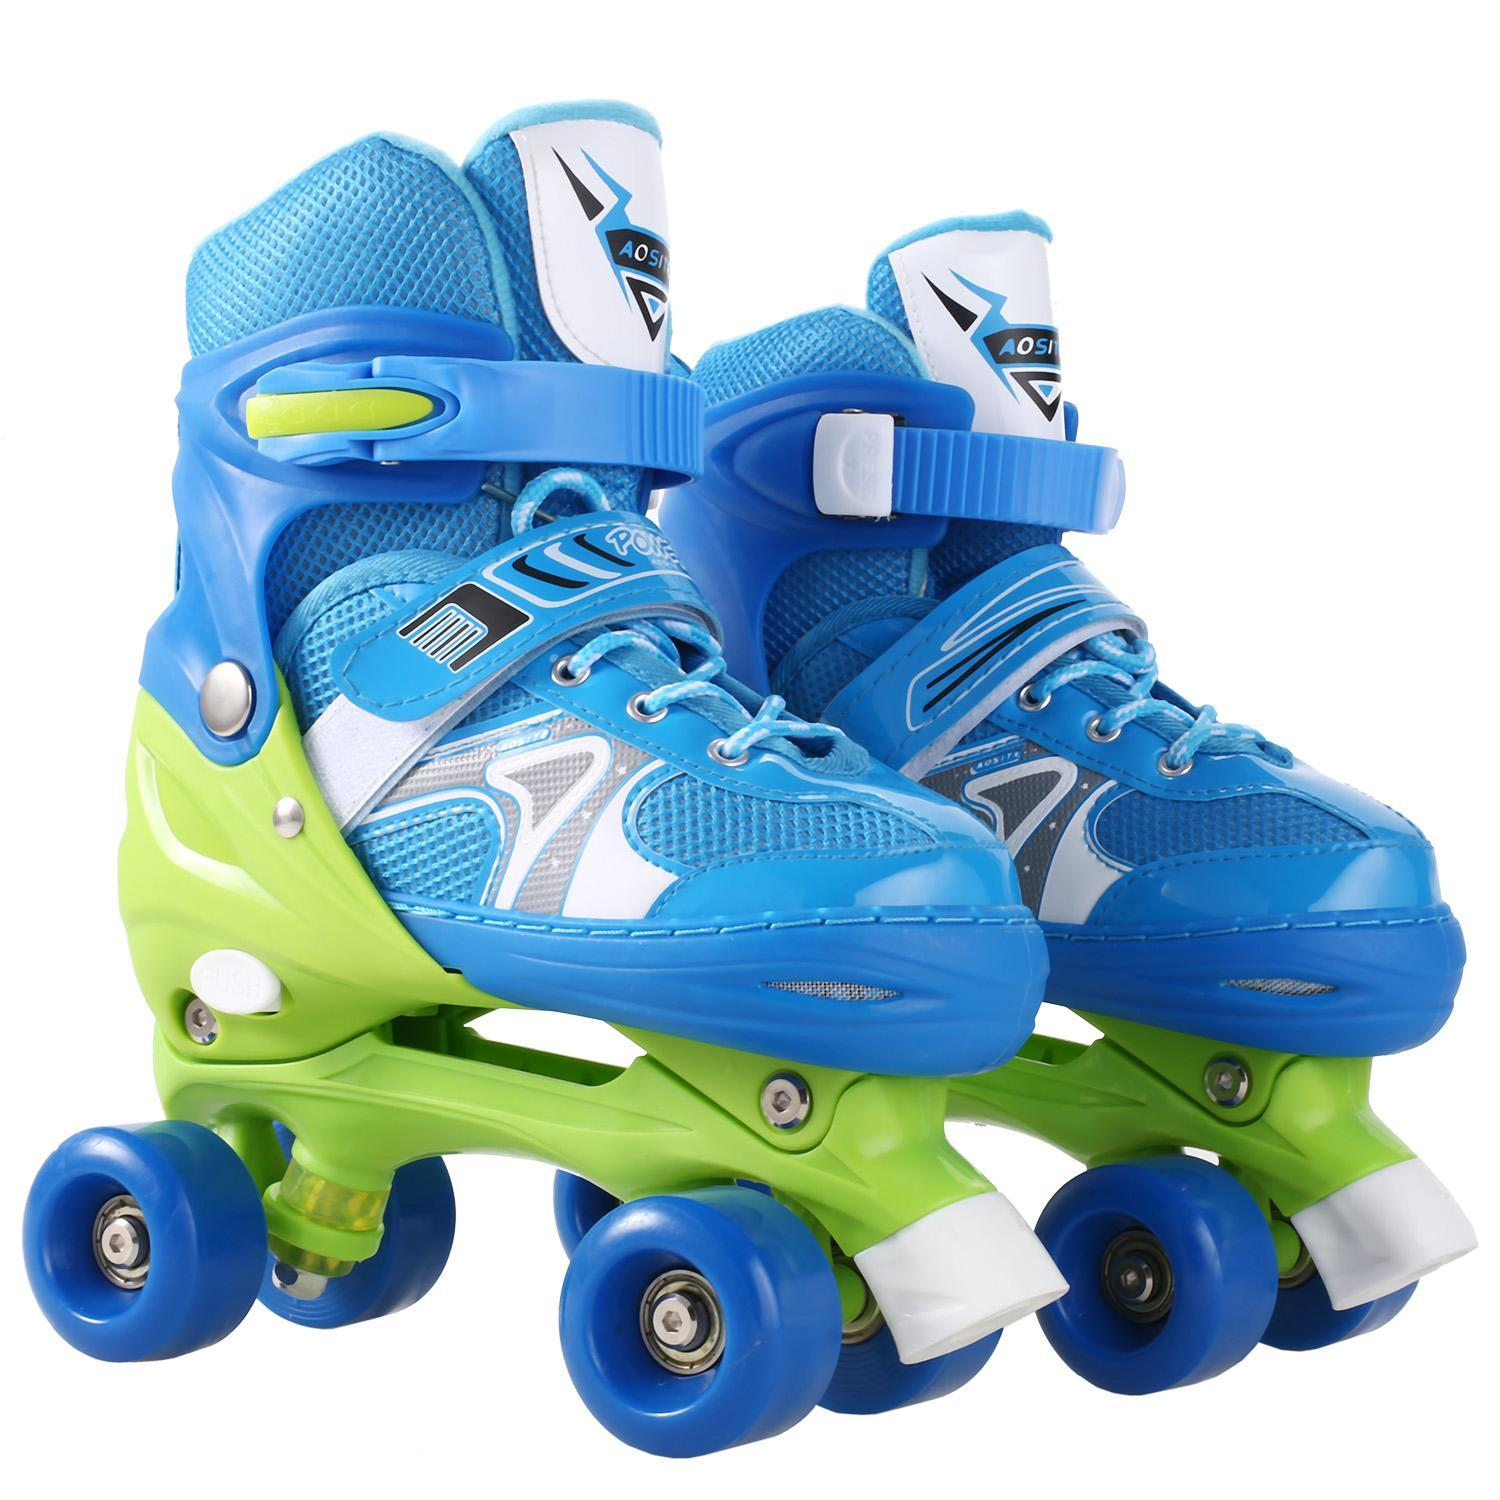 Christmas Celebration Unisex PP and PVC Wheel Indoor Outdoor Roller Children Tracer inland Skate Adjustable Double Row Skate HITC